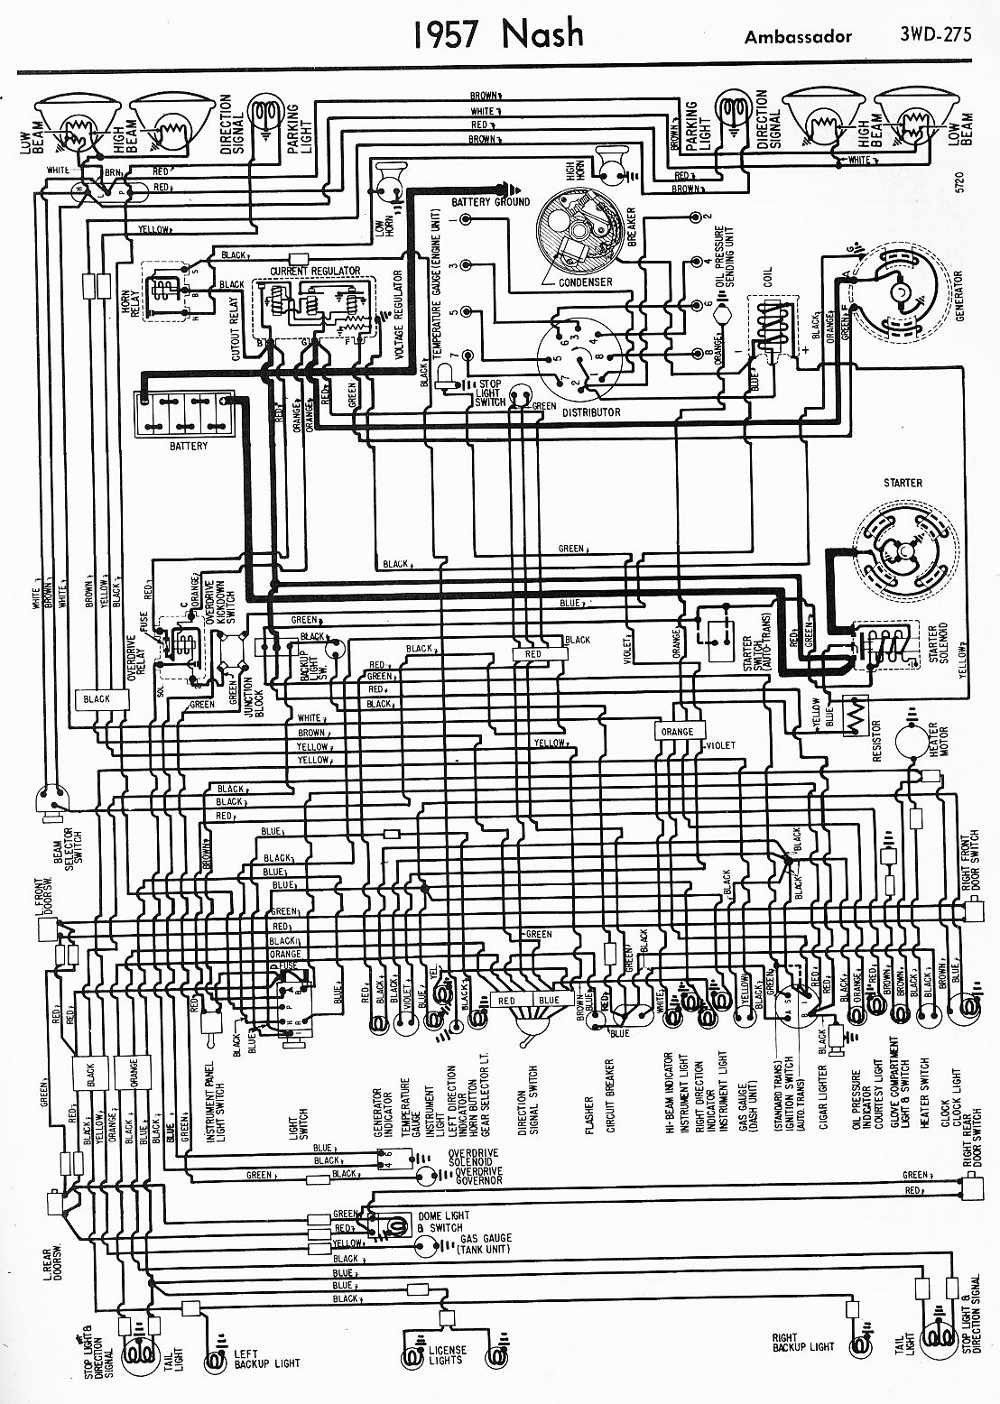 small resolution of wiring diagram for 1950 nash wiring diagram name nash trailer wiring diagram